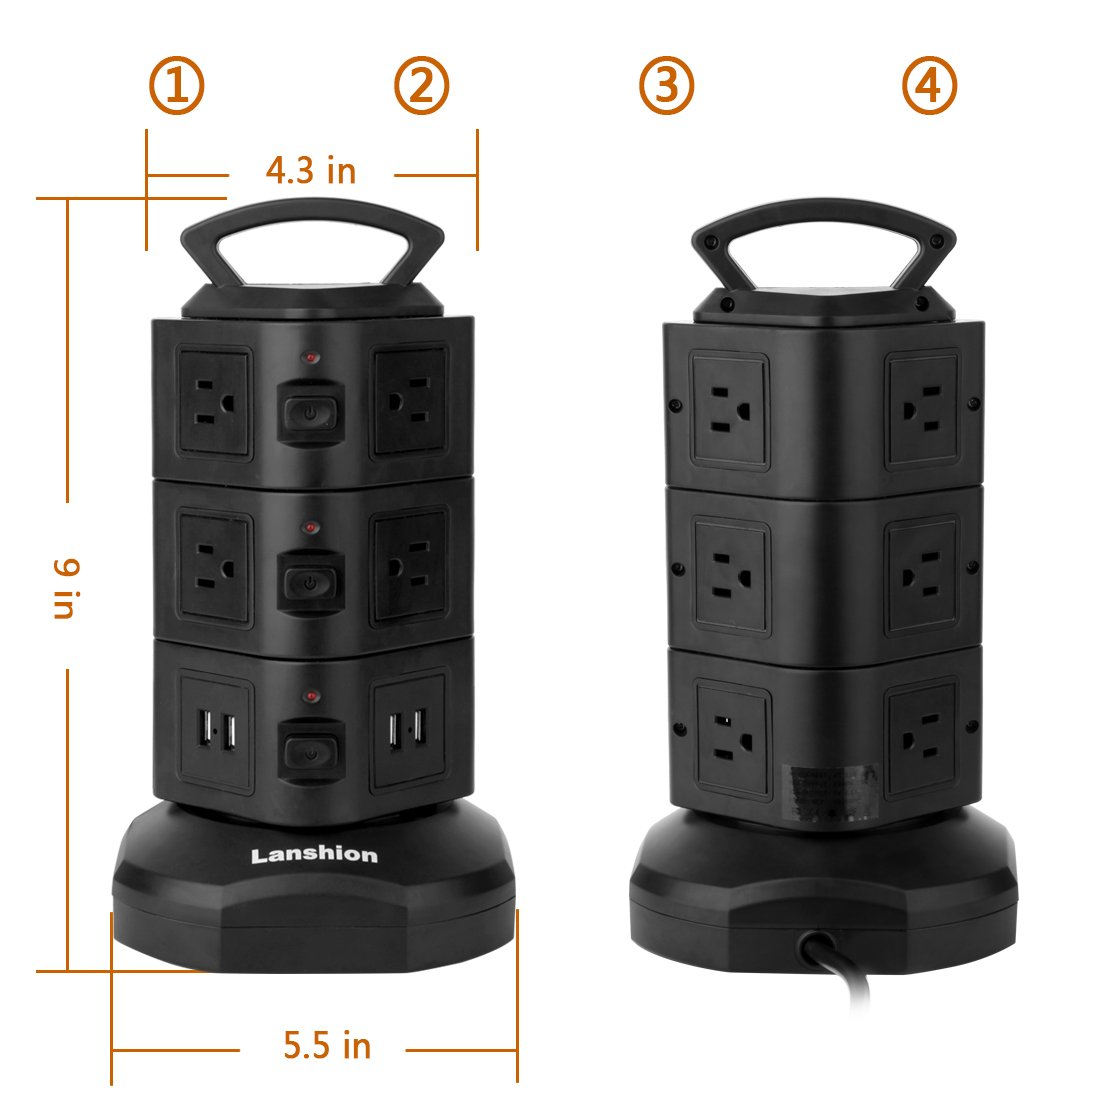 Power Strip Lanshion Tower Surge Protector Power Socket Electric Charging Station 10 Outlet Plugs with 4 USB Slot 9.8ft Retractable Cable Cord Wire Extension Universal Charging Station Office by Lanshion (Image #2)